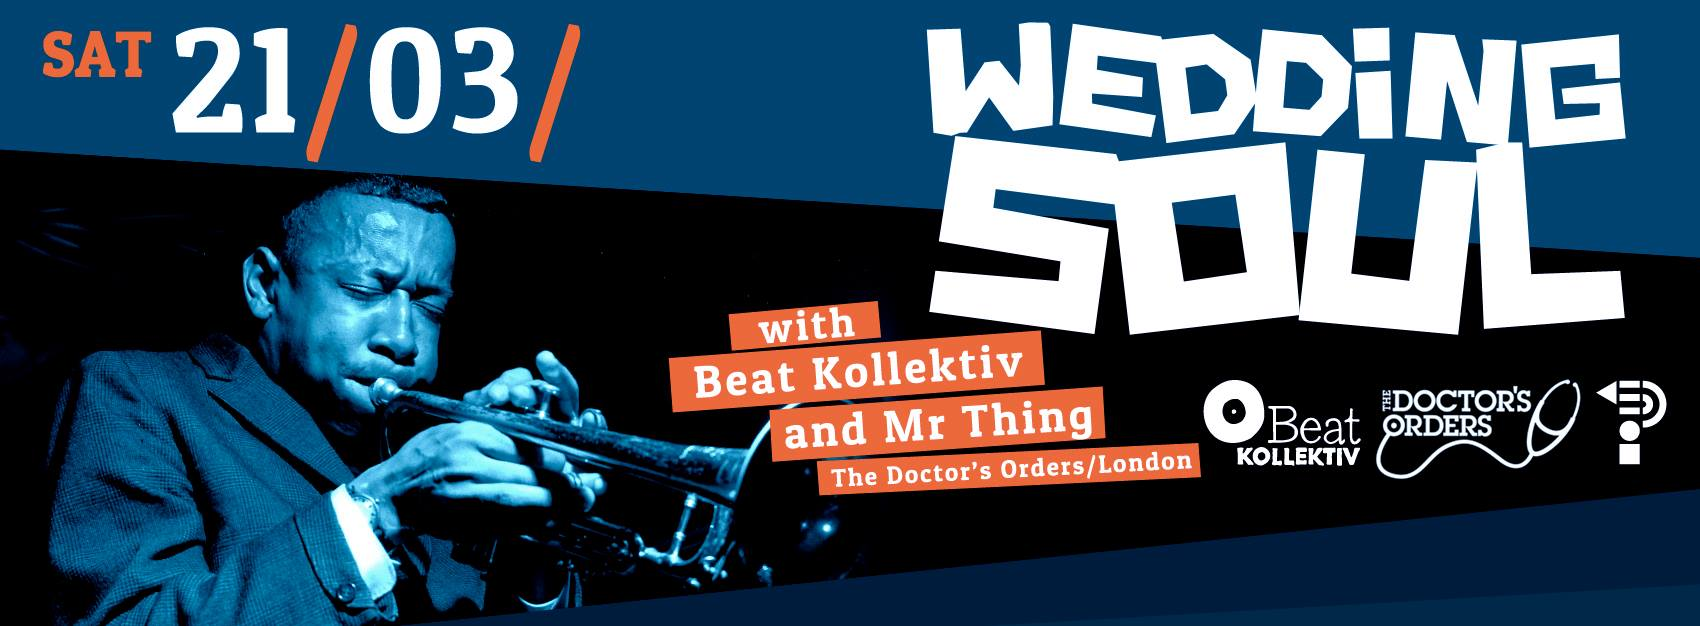 21.03.2015 // WEDDING SOUL with BEAT KOLLEKTIV & MR THING (The Doctor's Orders, London)